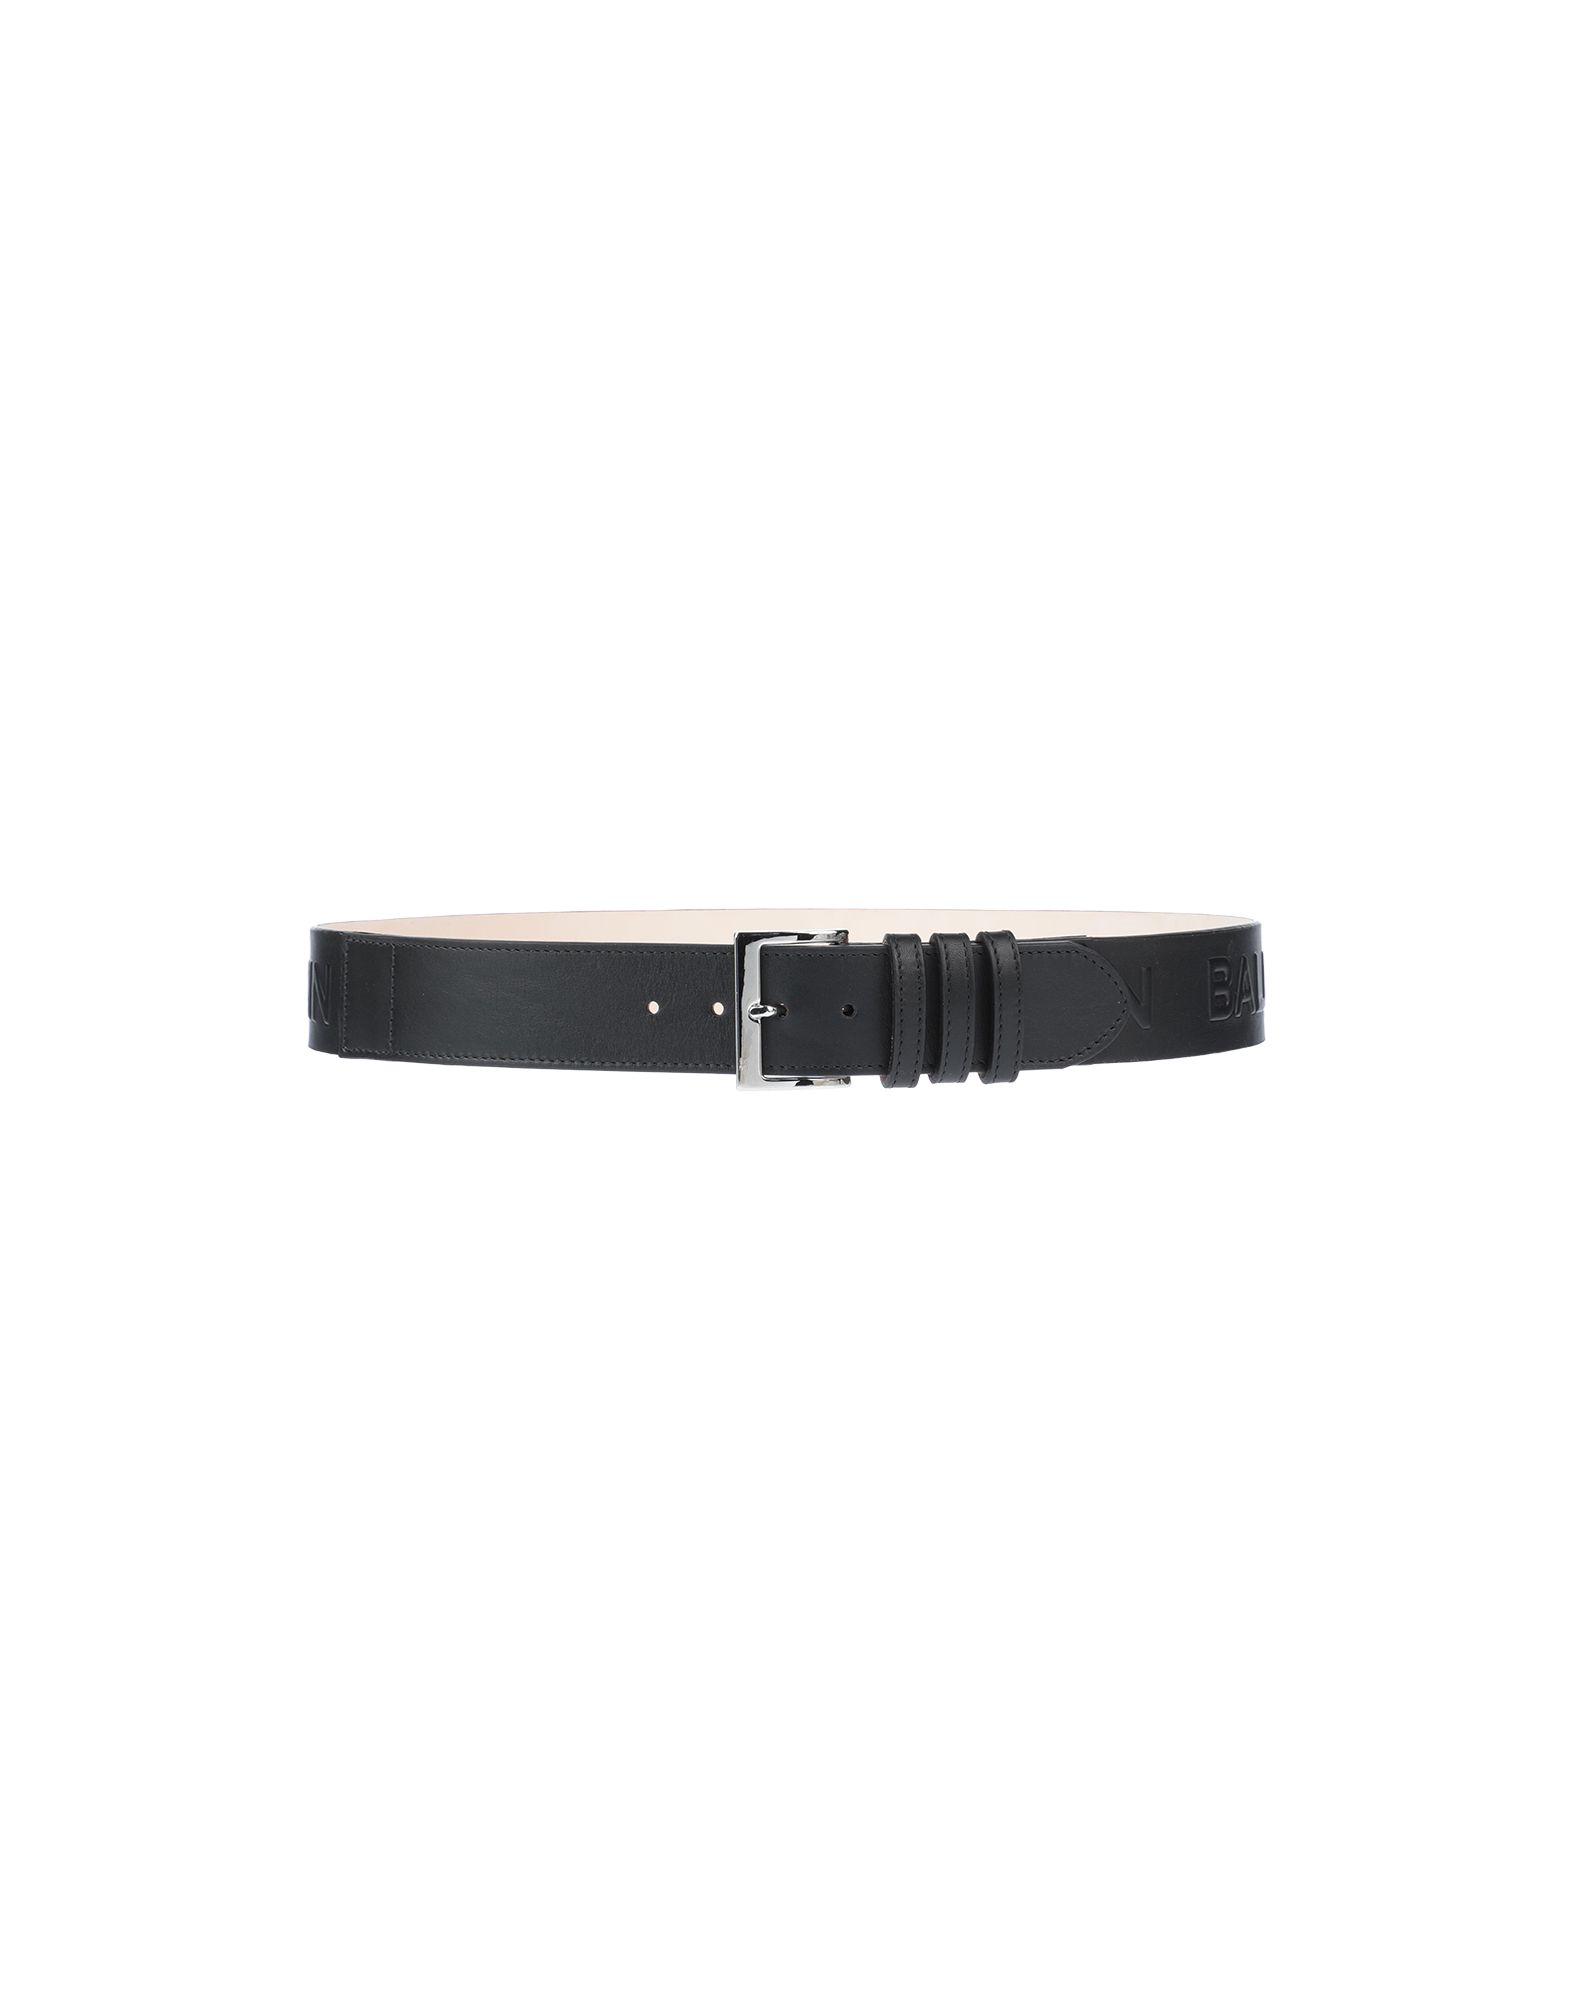 BALMAIN Belts. leather, logo, solid color, buckle fastening, leather lining, standard, contains non-textile parts of animal origin. Soft Leather